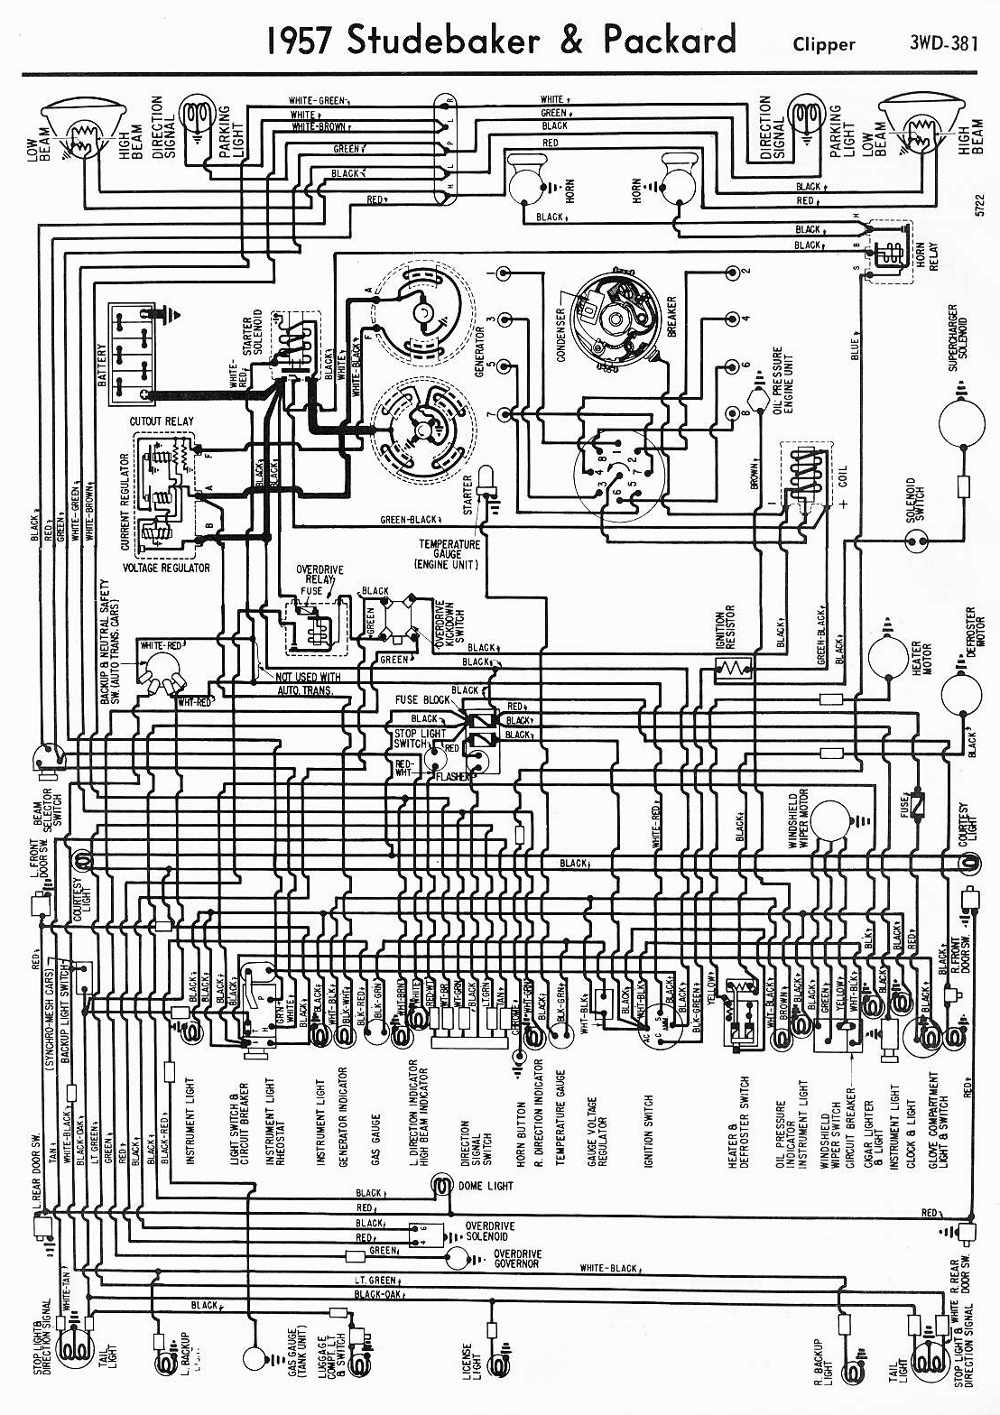 Ignition Switch Relay Wiring Diagram Create Fishbone In Word Diagrams 911: December 2011